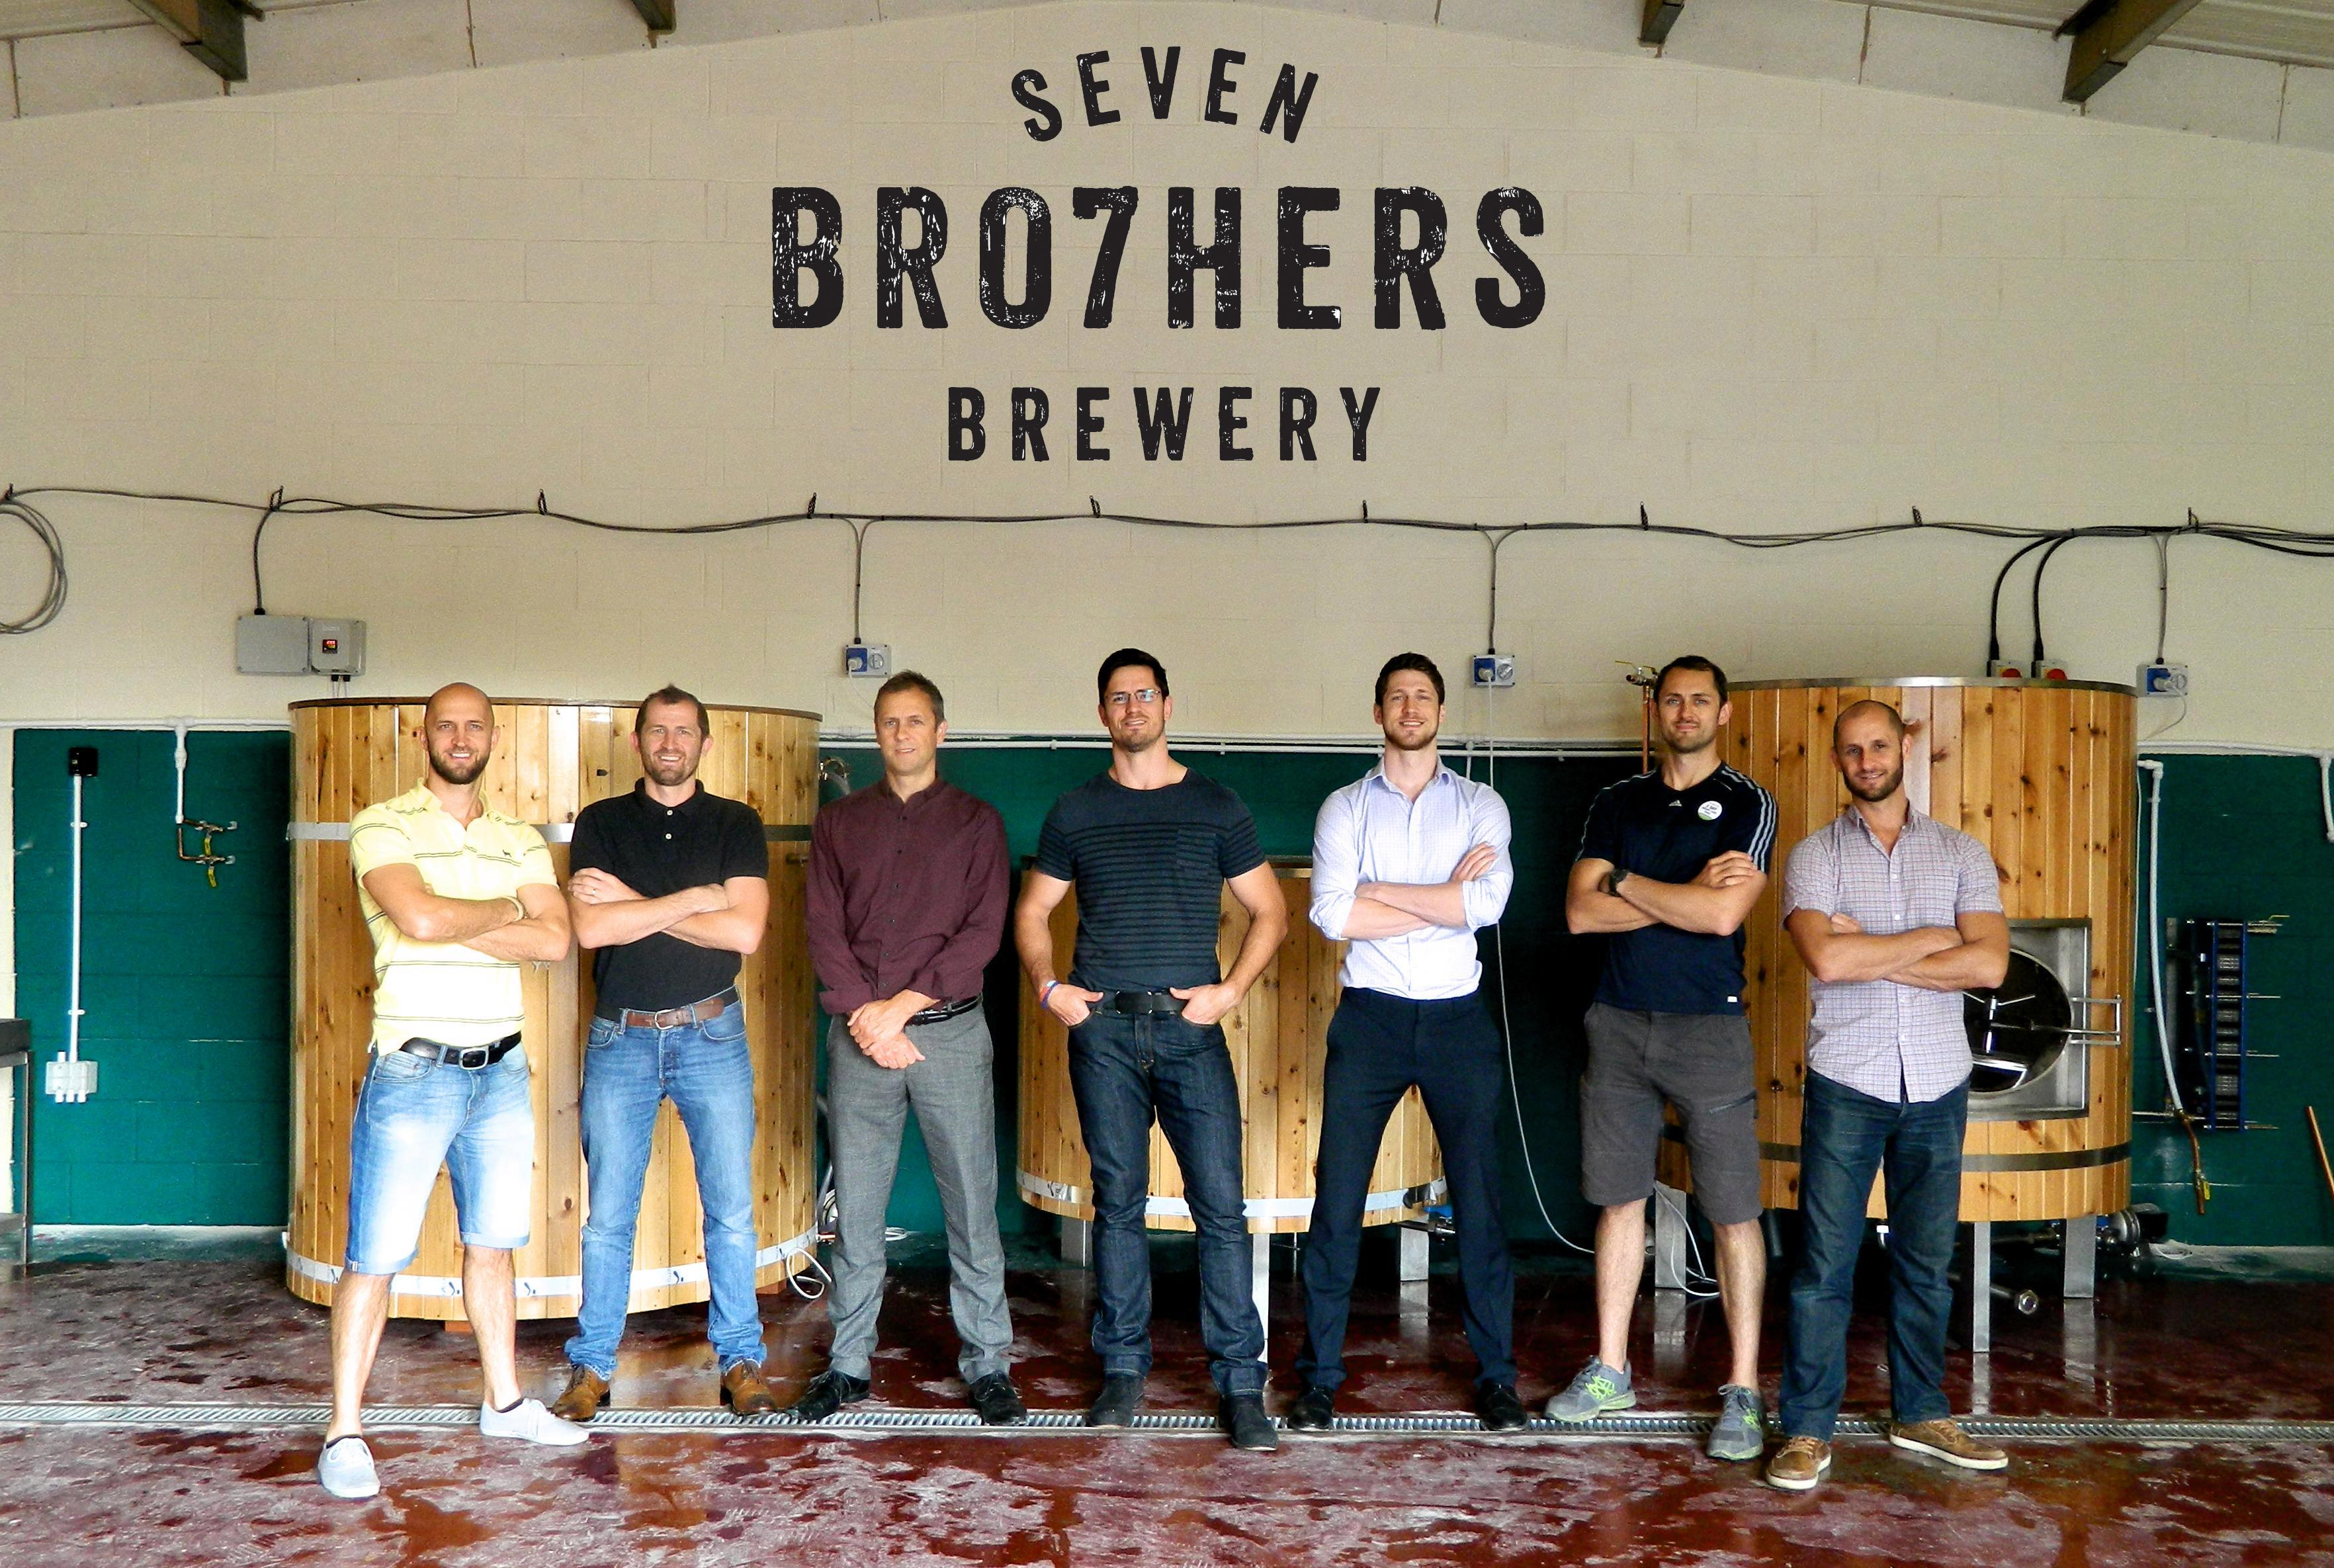 The Seven Brothers Brewery